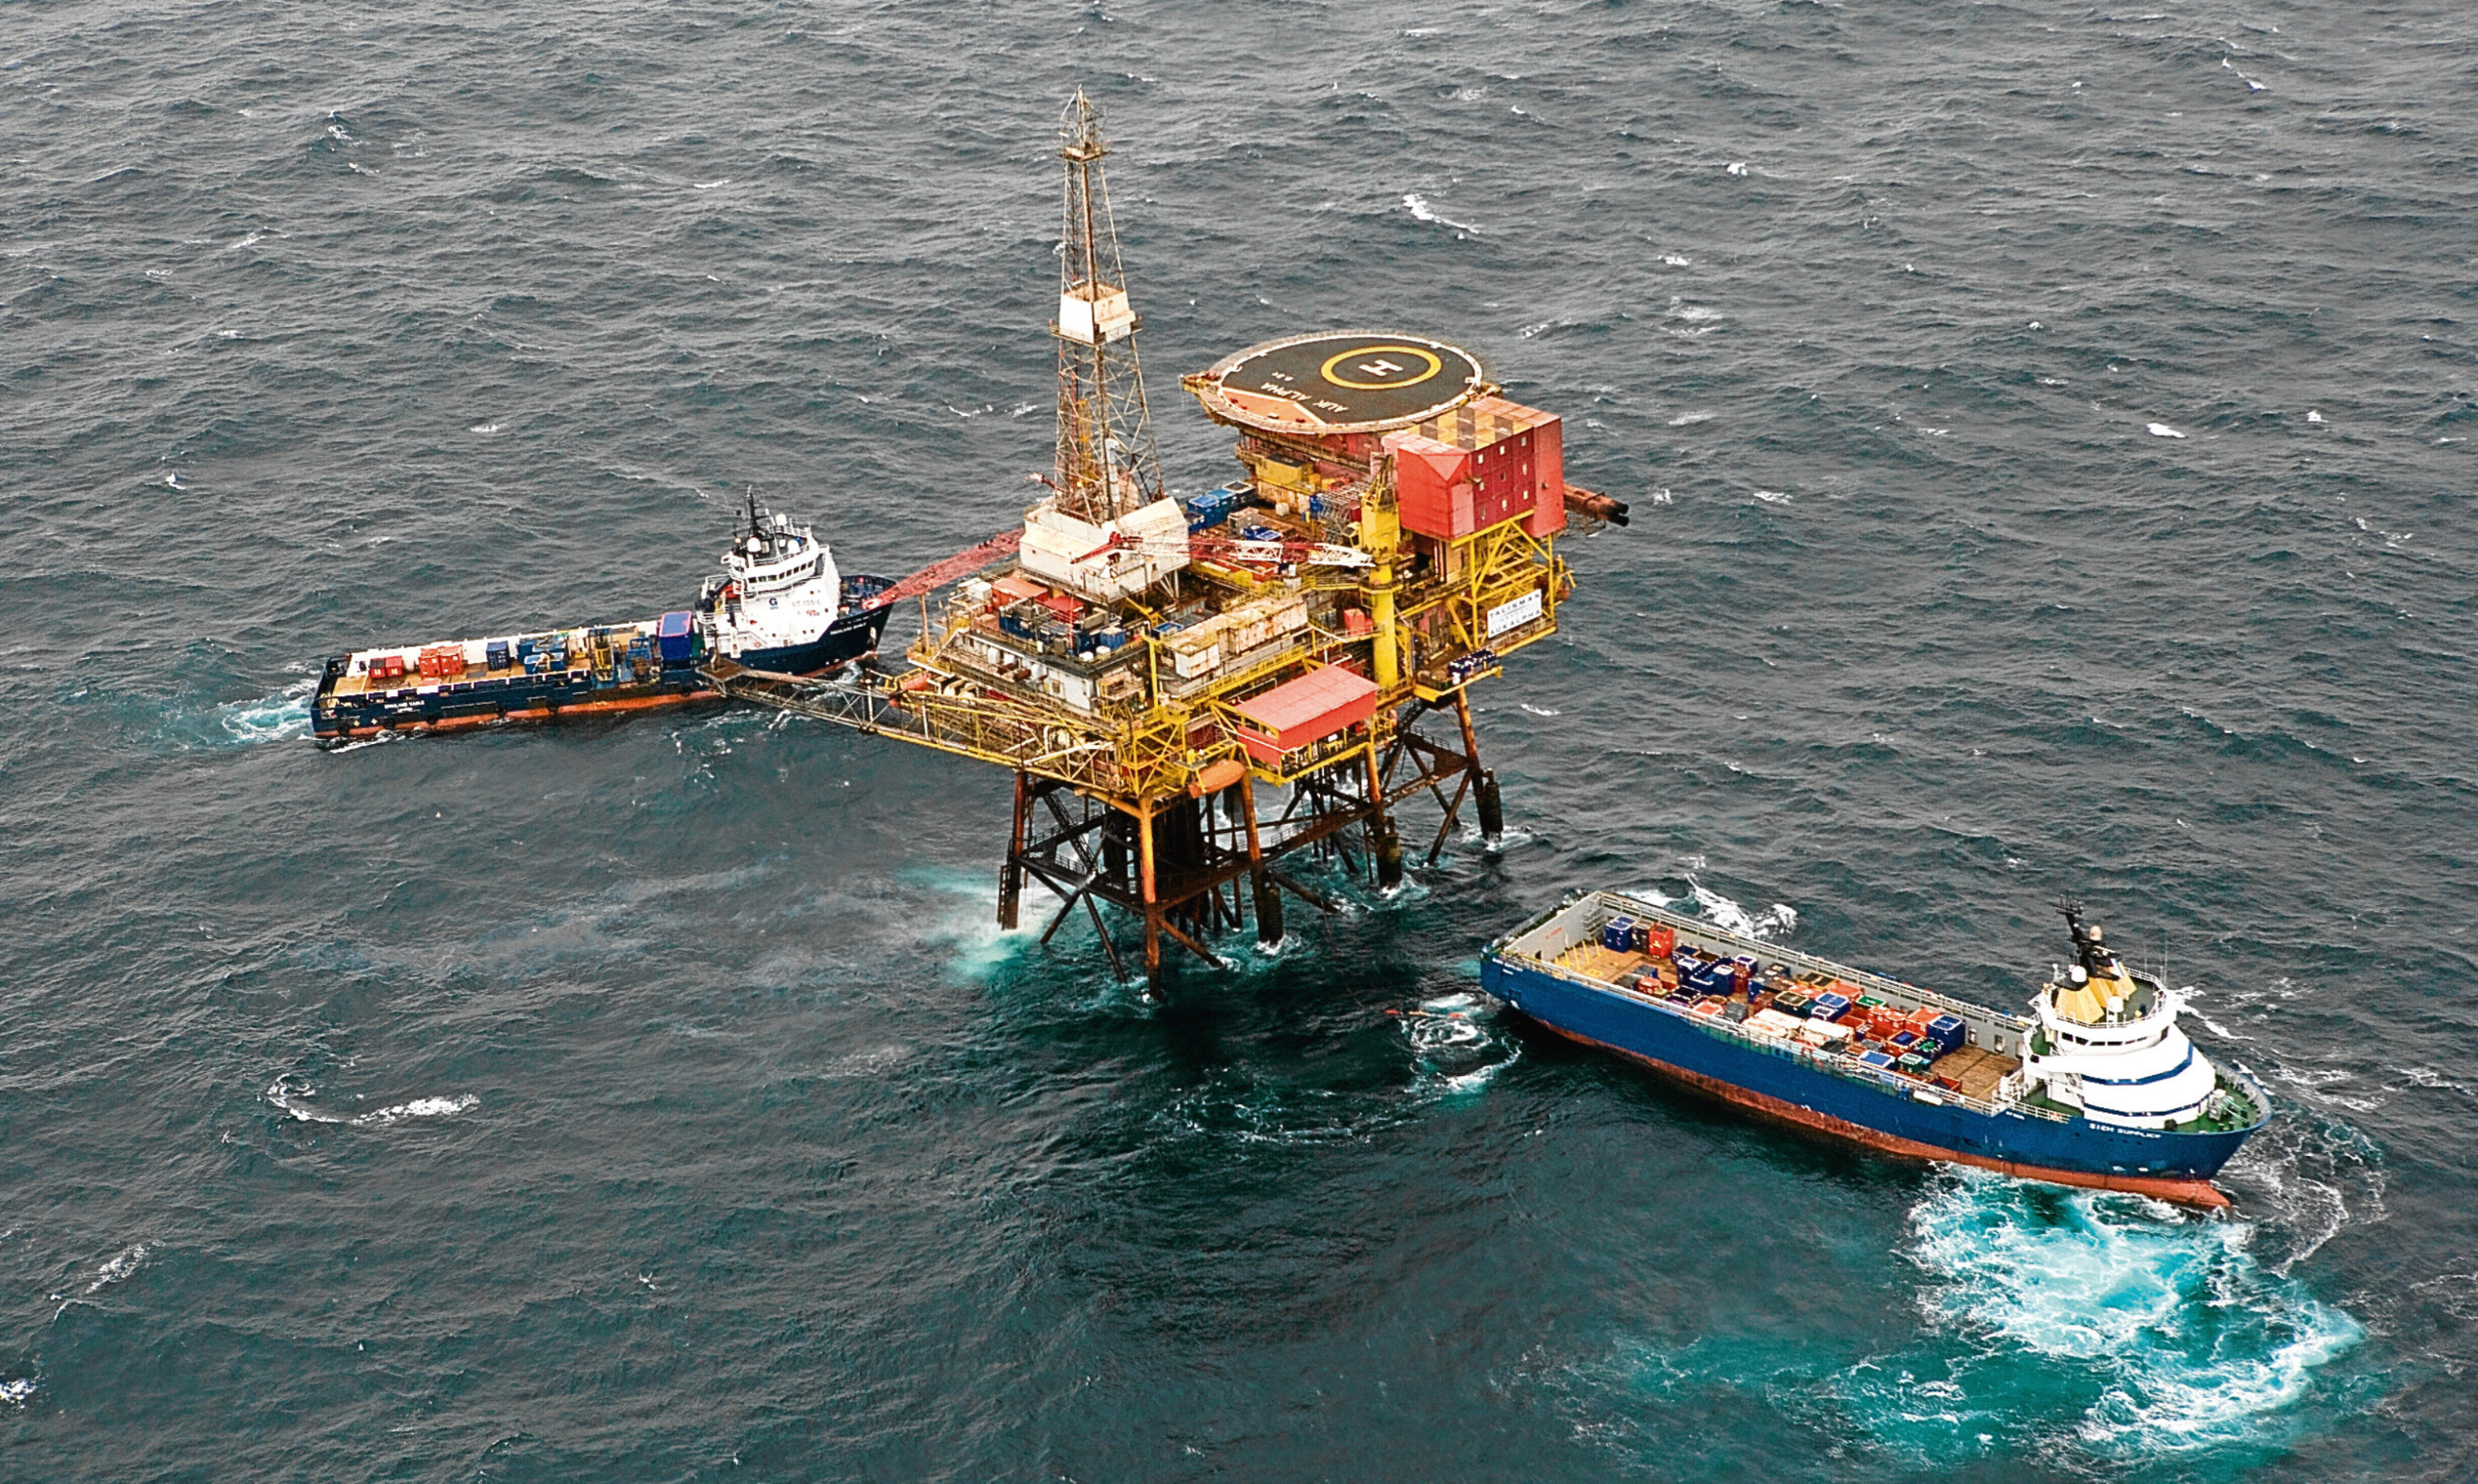 Wood Group said the North Sea remained a challenging environment